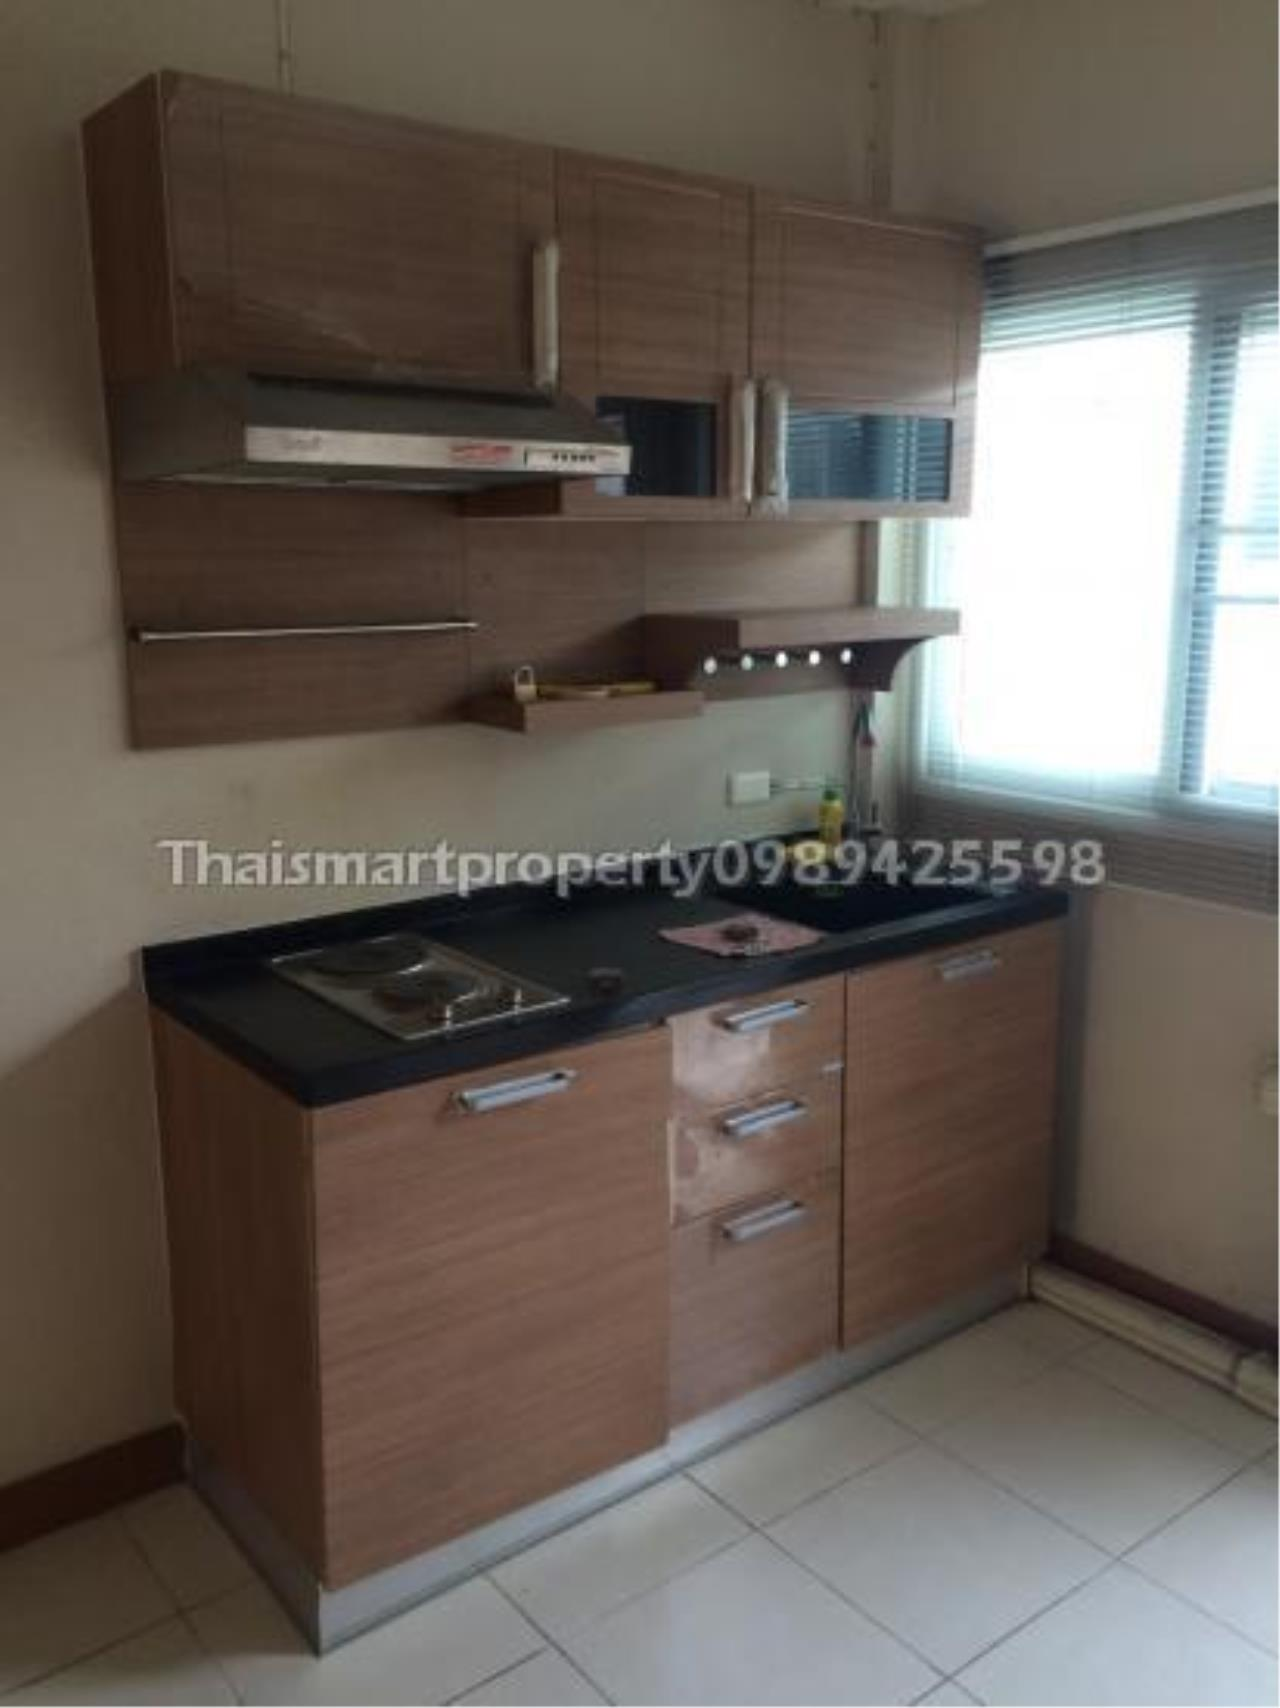 Thai Smart Property Agency's 3 storey townhome for sale, Casa City Sukontasawat 2 4